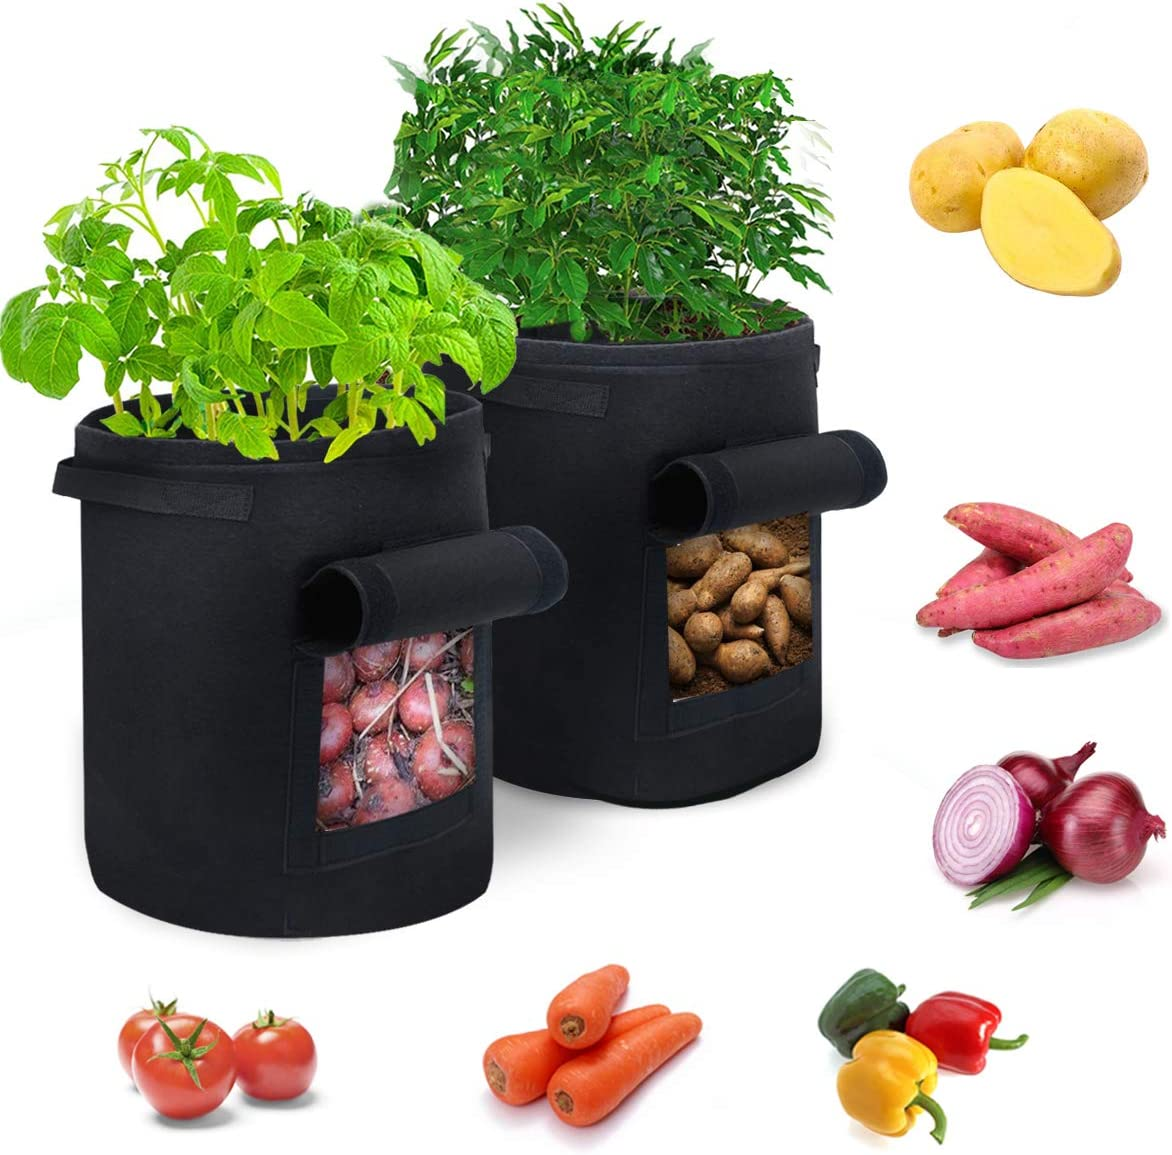 Ledeak 2 Pack 10 Gallon Garden Grow Bags Aeration Fabric Pots, Smart Thickened NonWoven Containers with Handles for Potato Tomato Vegetable Flower Planting (Black)